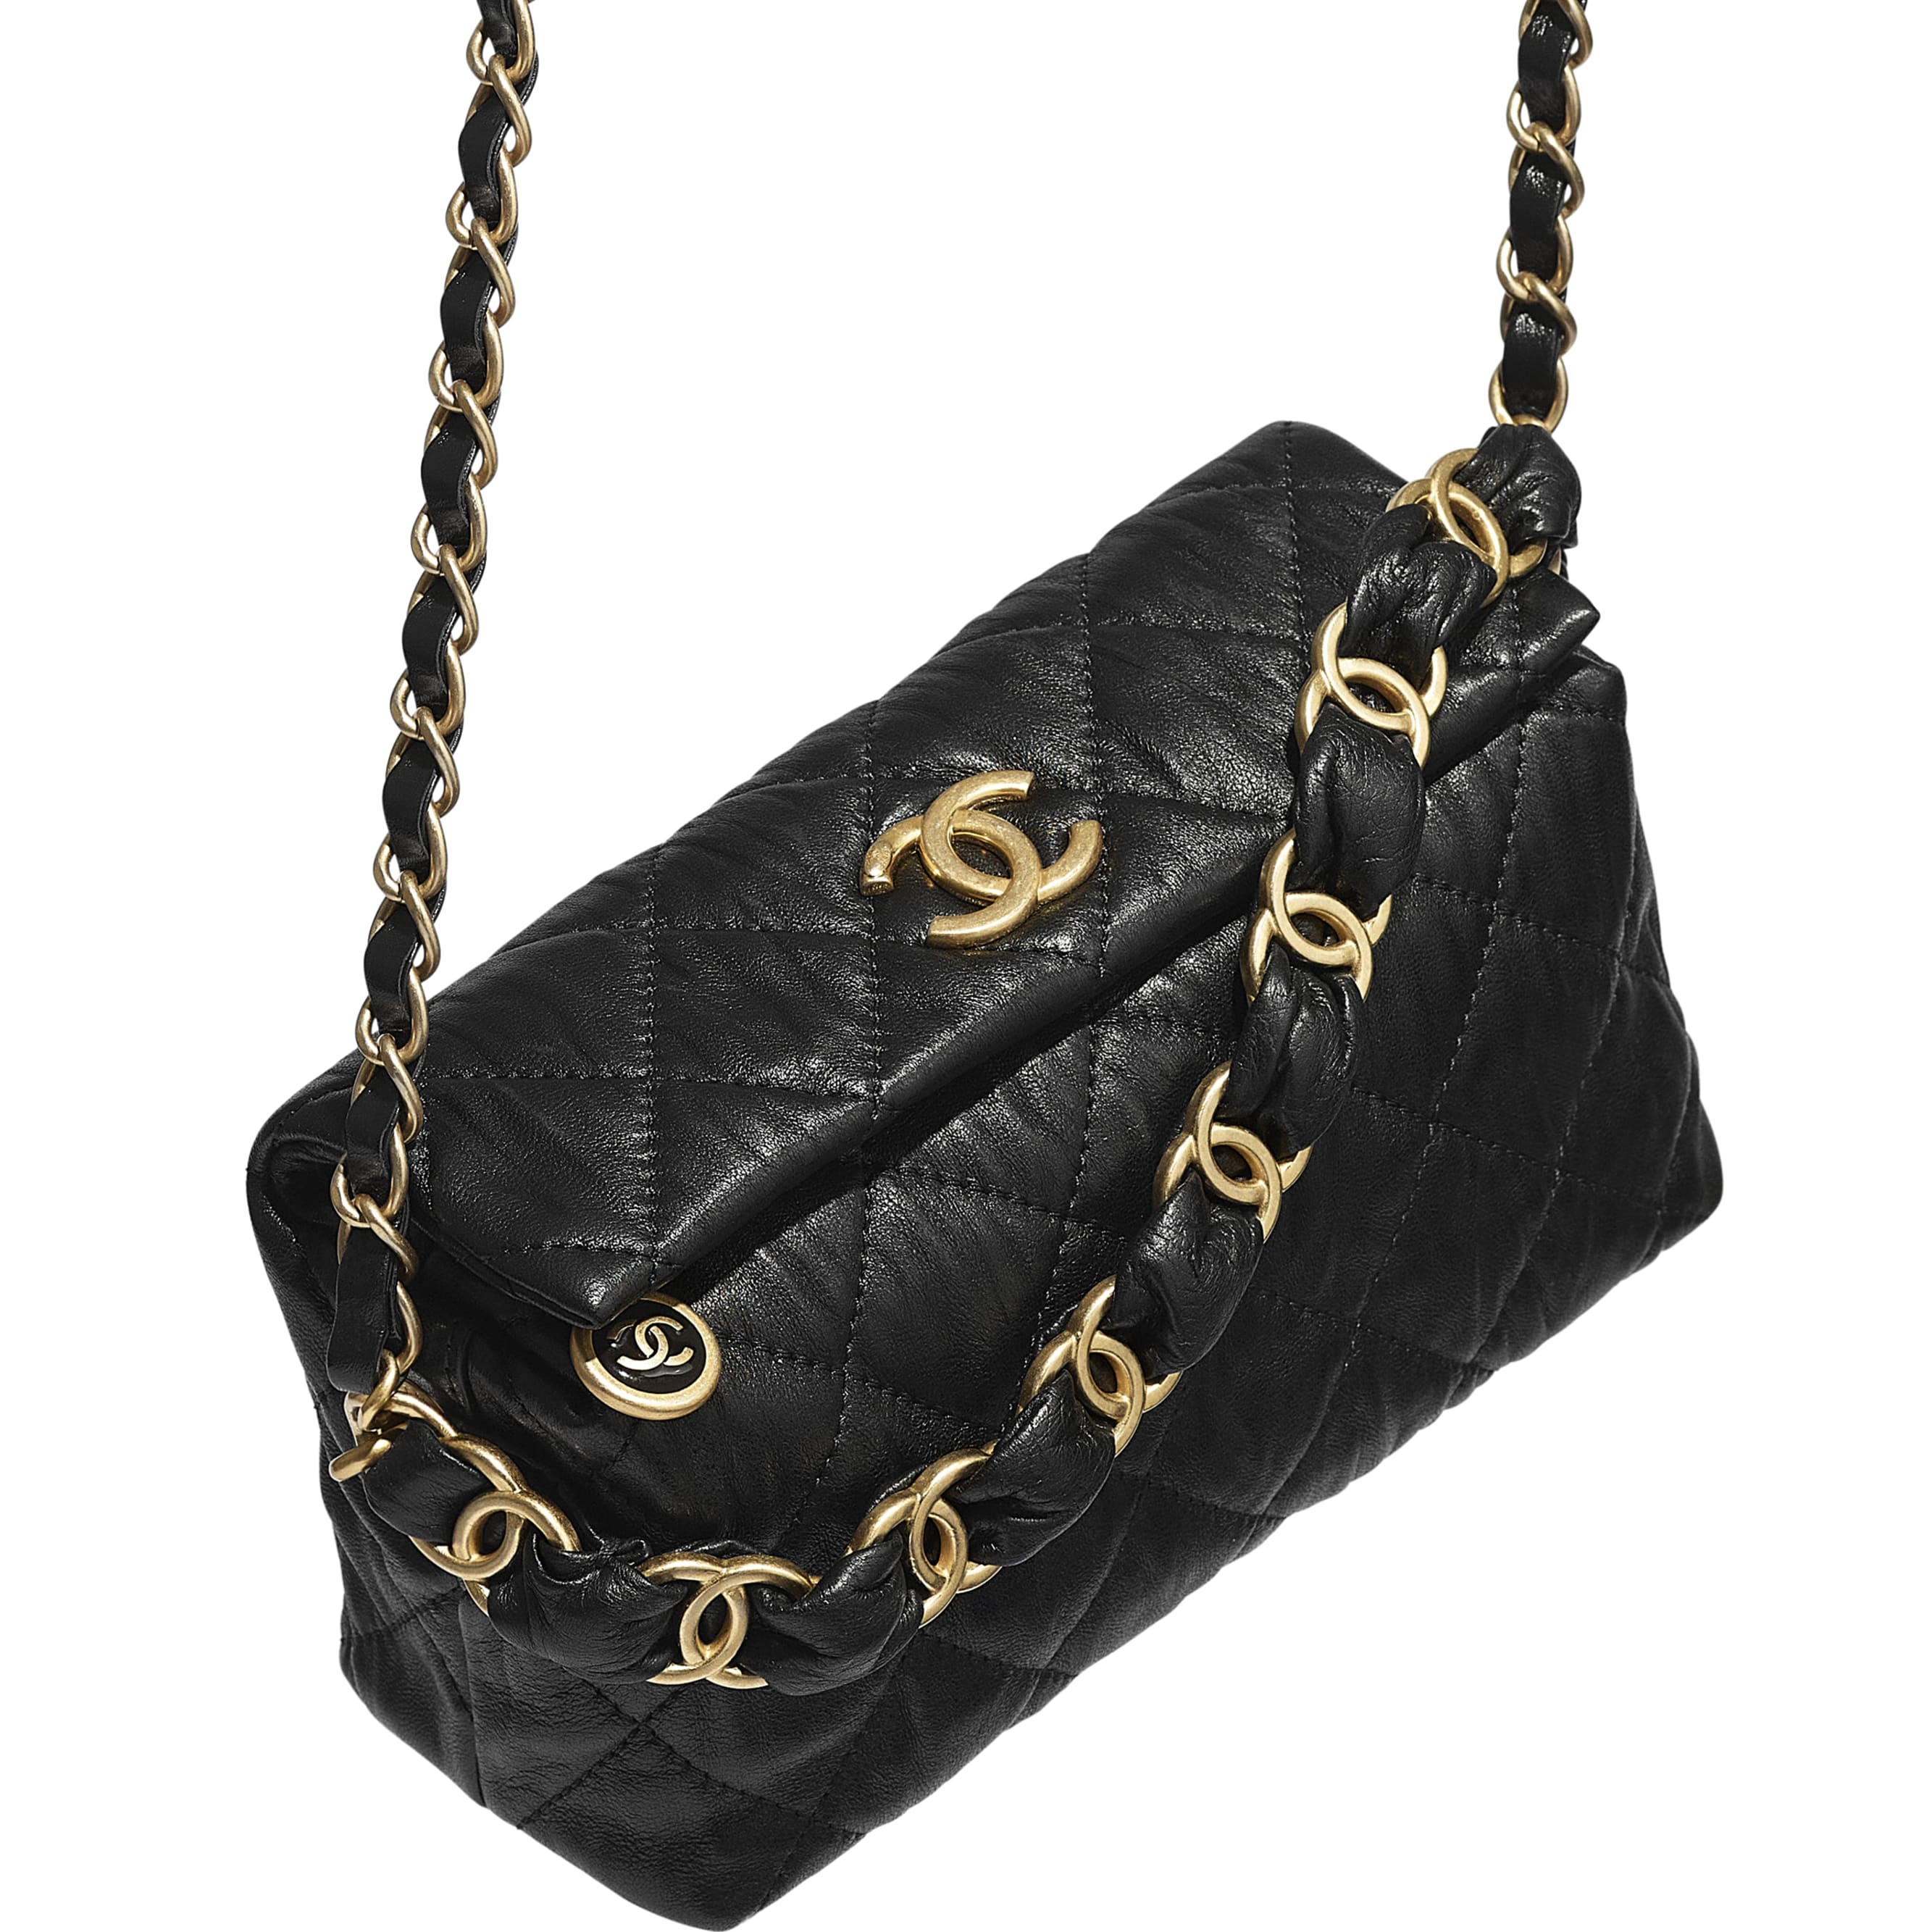 Small Hobo Bag - Black - Crumpled Lambskin & Gold-Tone Metal - CHANEL - Extra view - see standard sized version